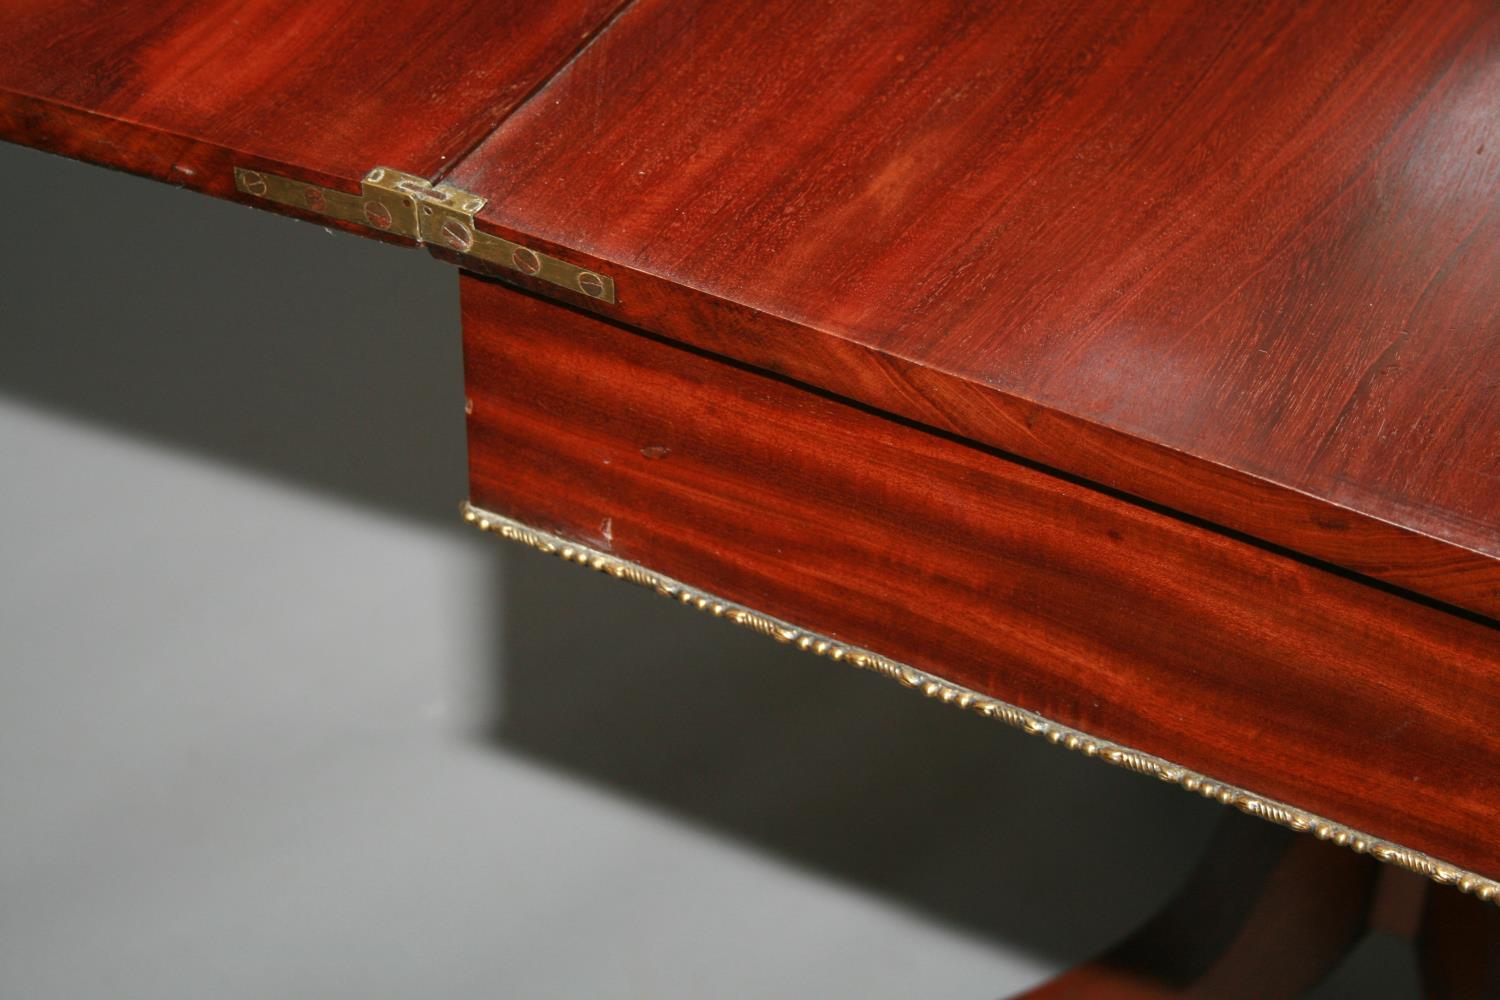 Fine Regency mahogany fold over tea table, the top with Rosewood cross banding and frieze with ebony - Image 4 of 4